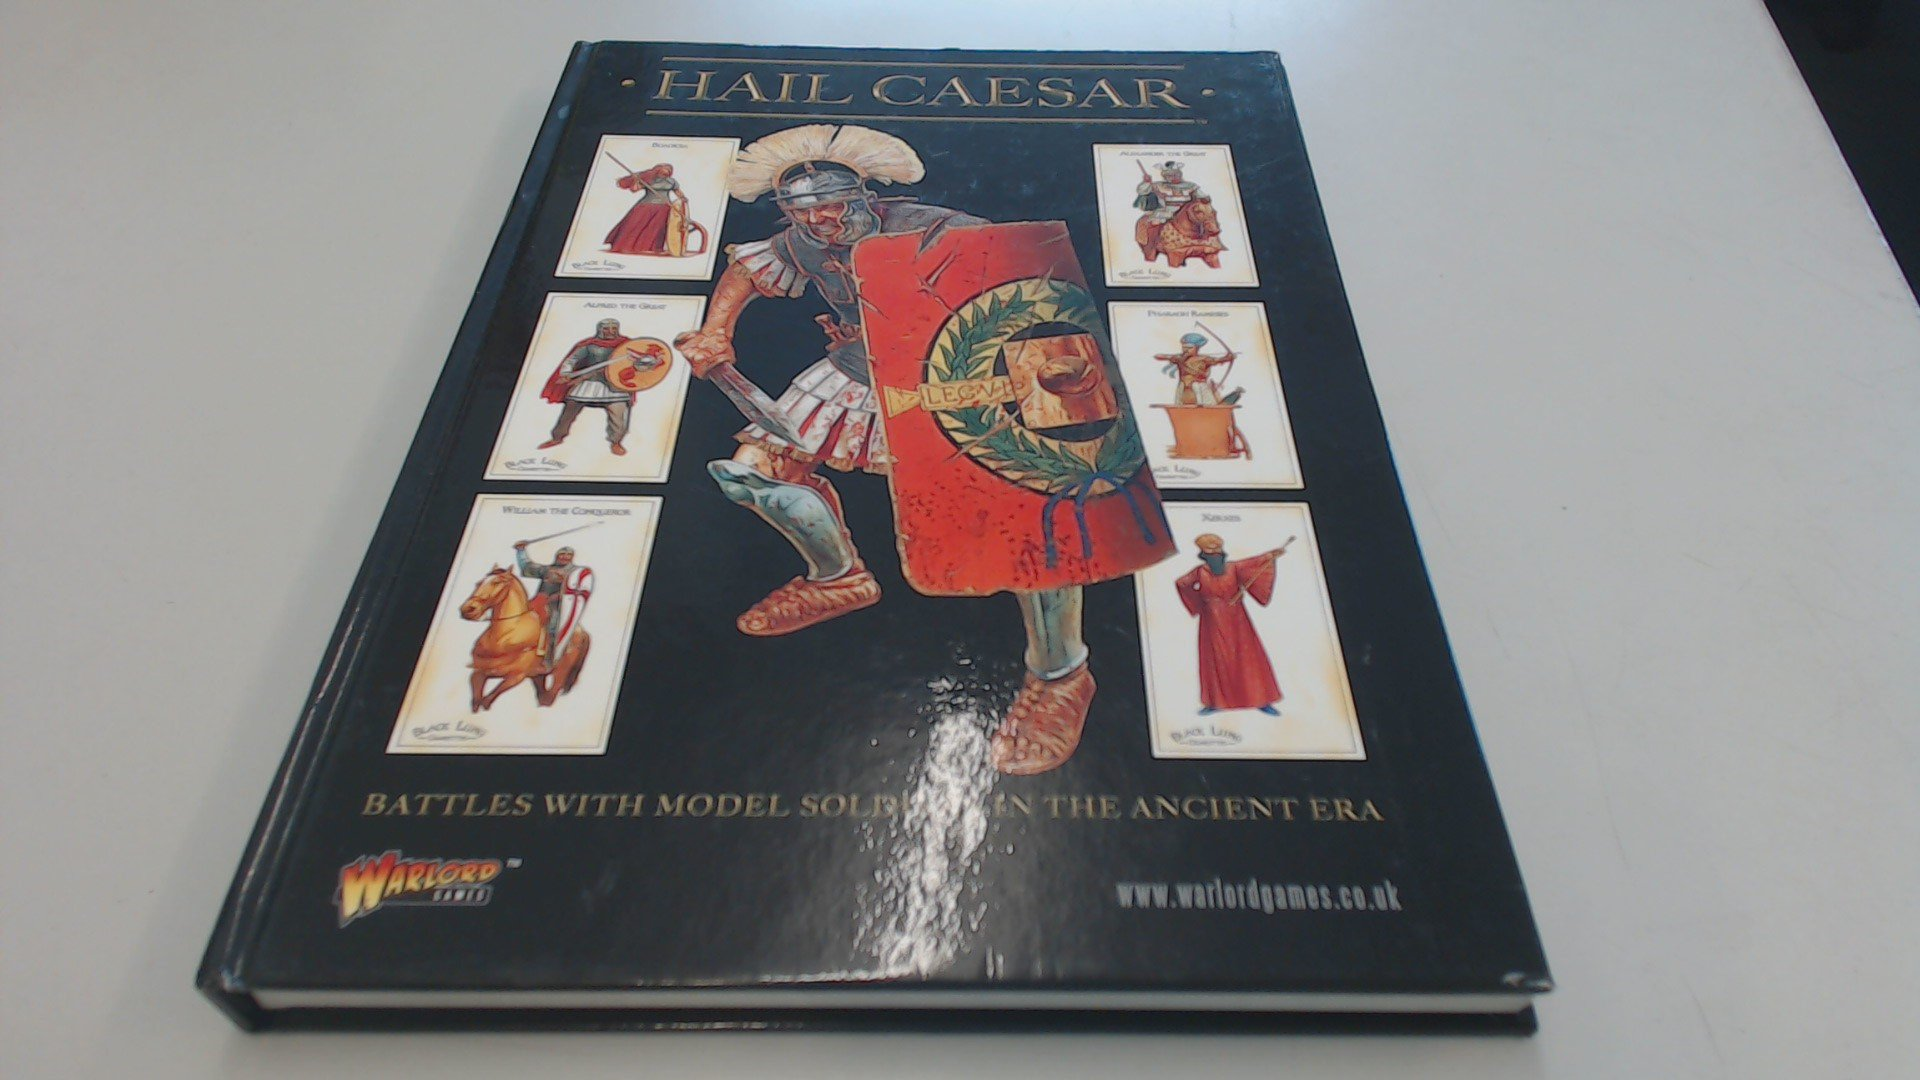 Hail Caesar: Battles with Model Soldiers in the Ancient Era